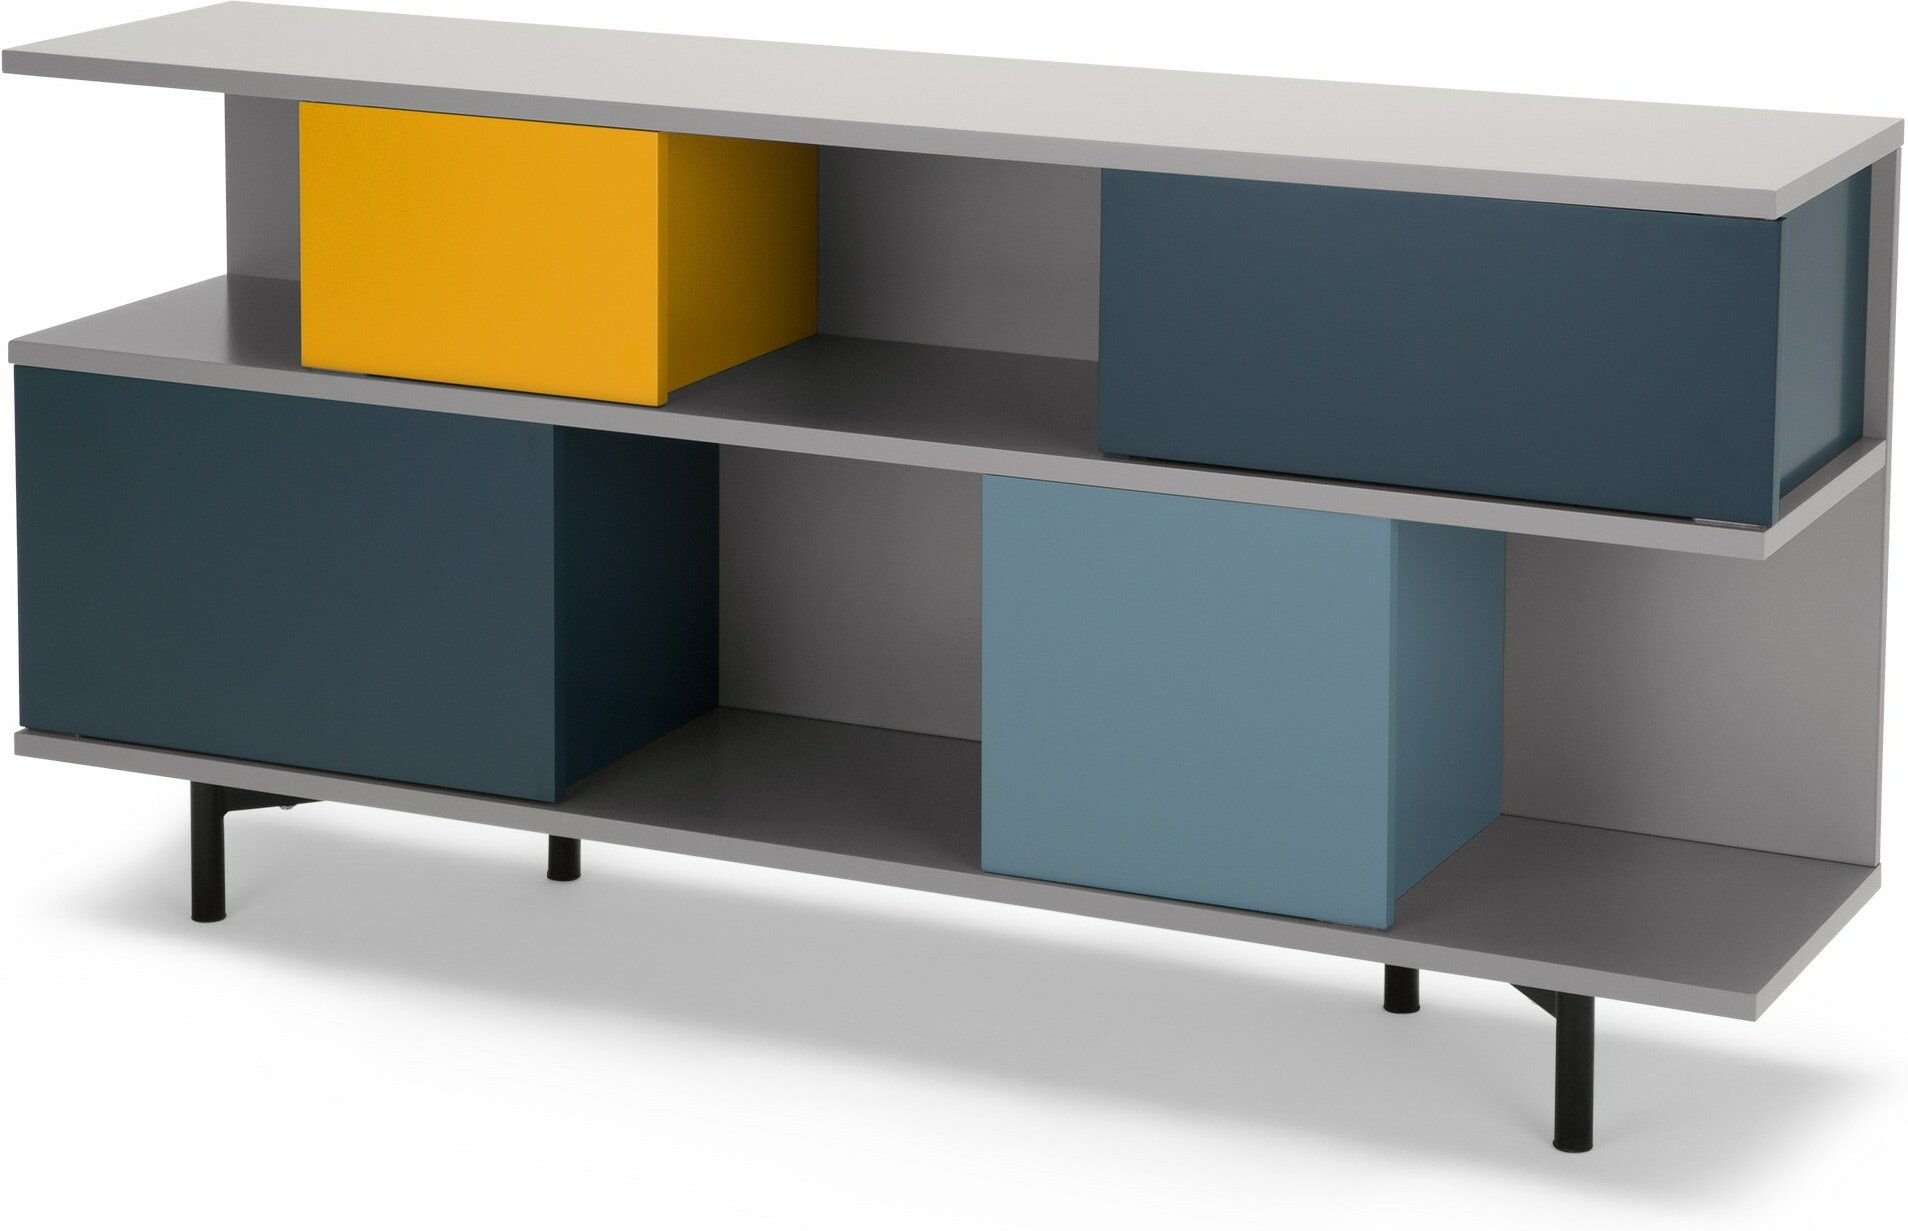 Fowler Low Shelving Unit, Multicolour